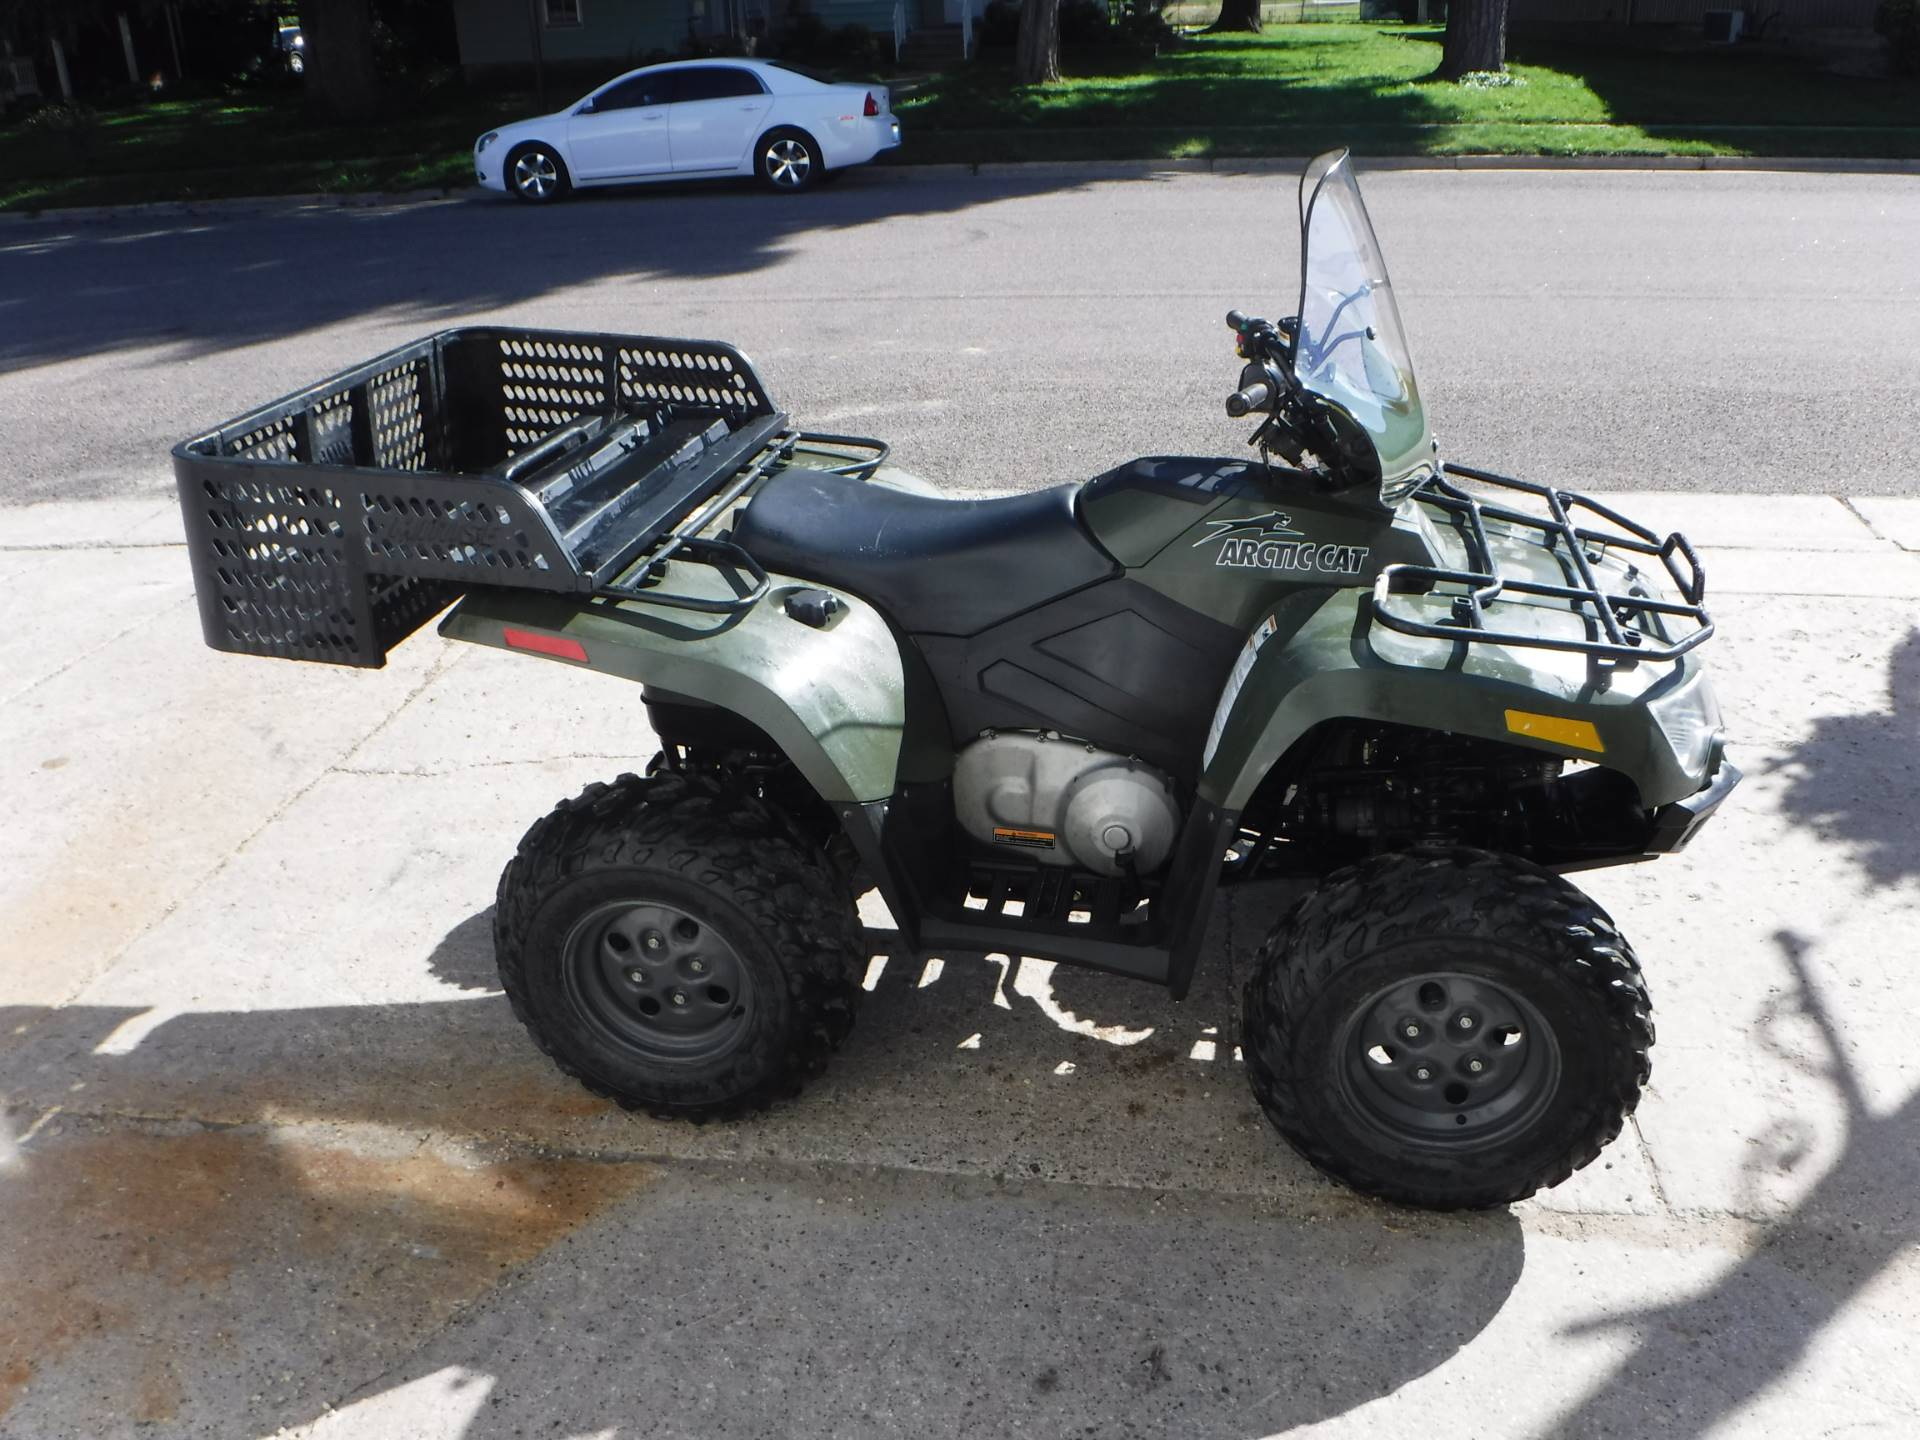 2008 Arctic Cat 400 4x4 Auto in Mazeppa, Minnesota - Photo 2